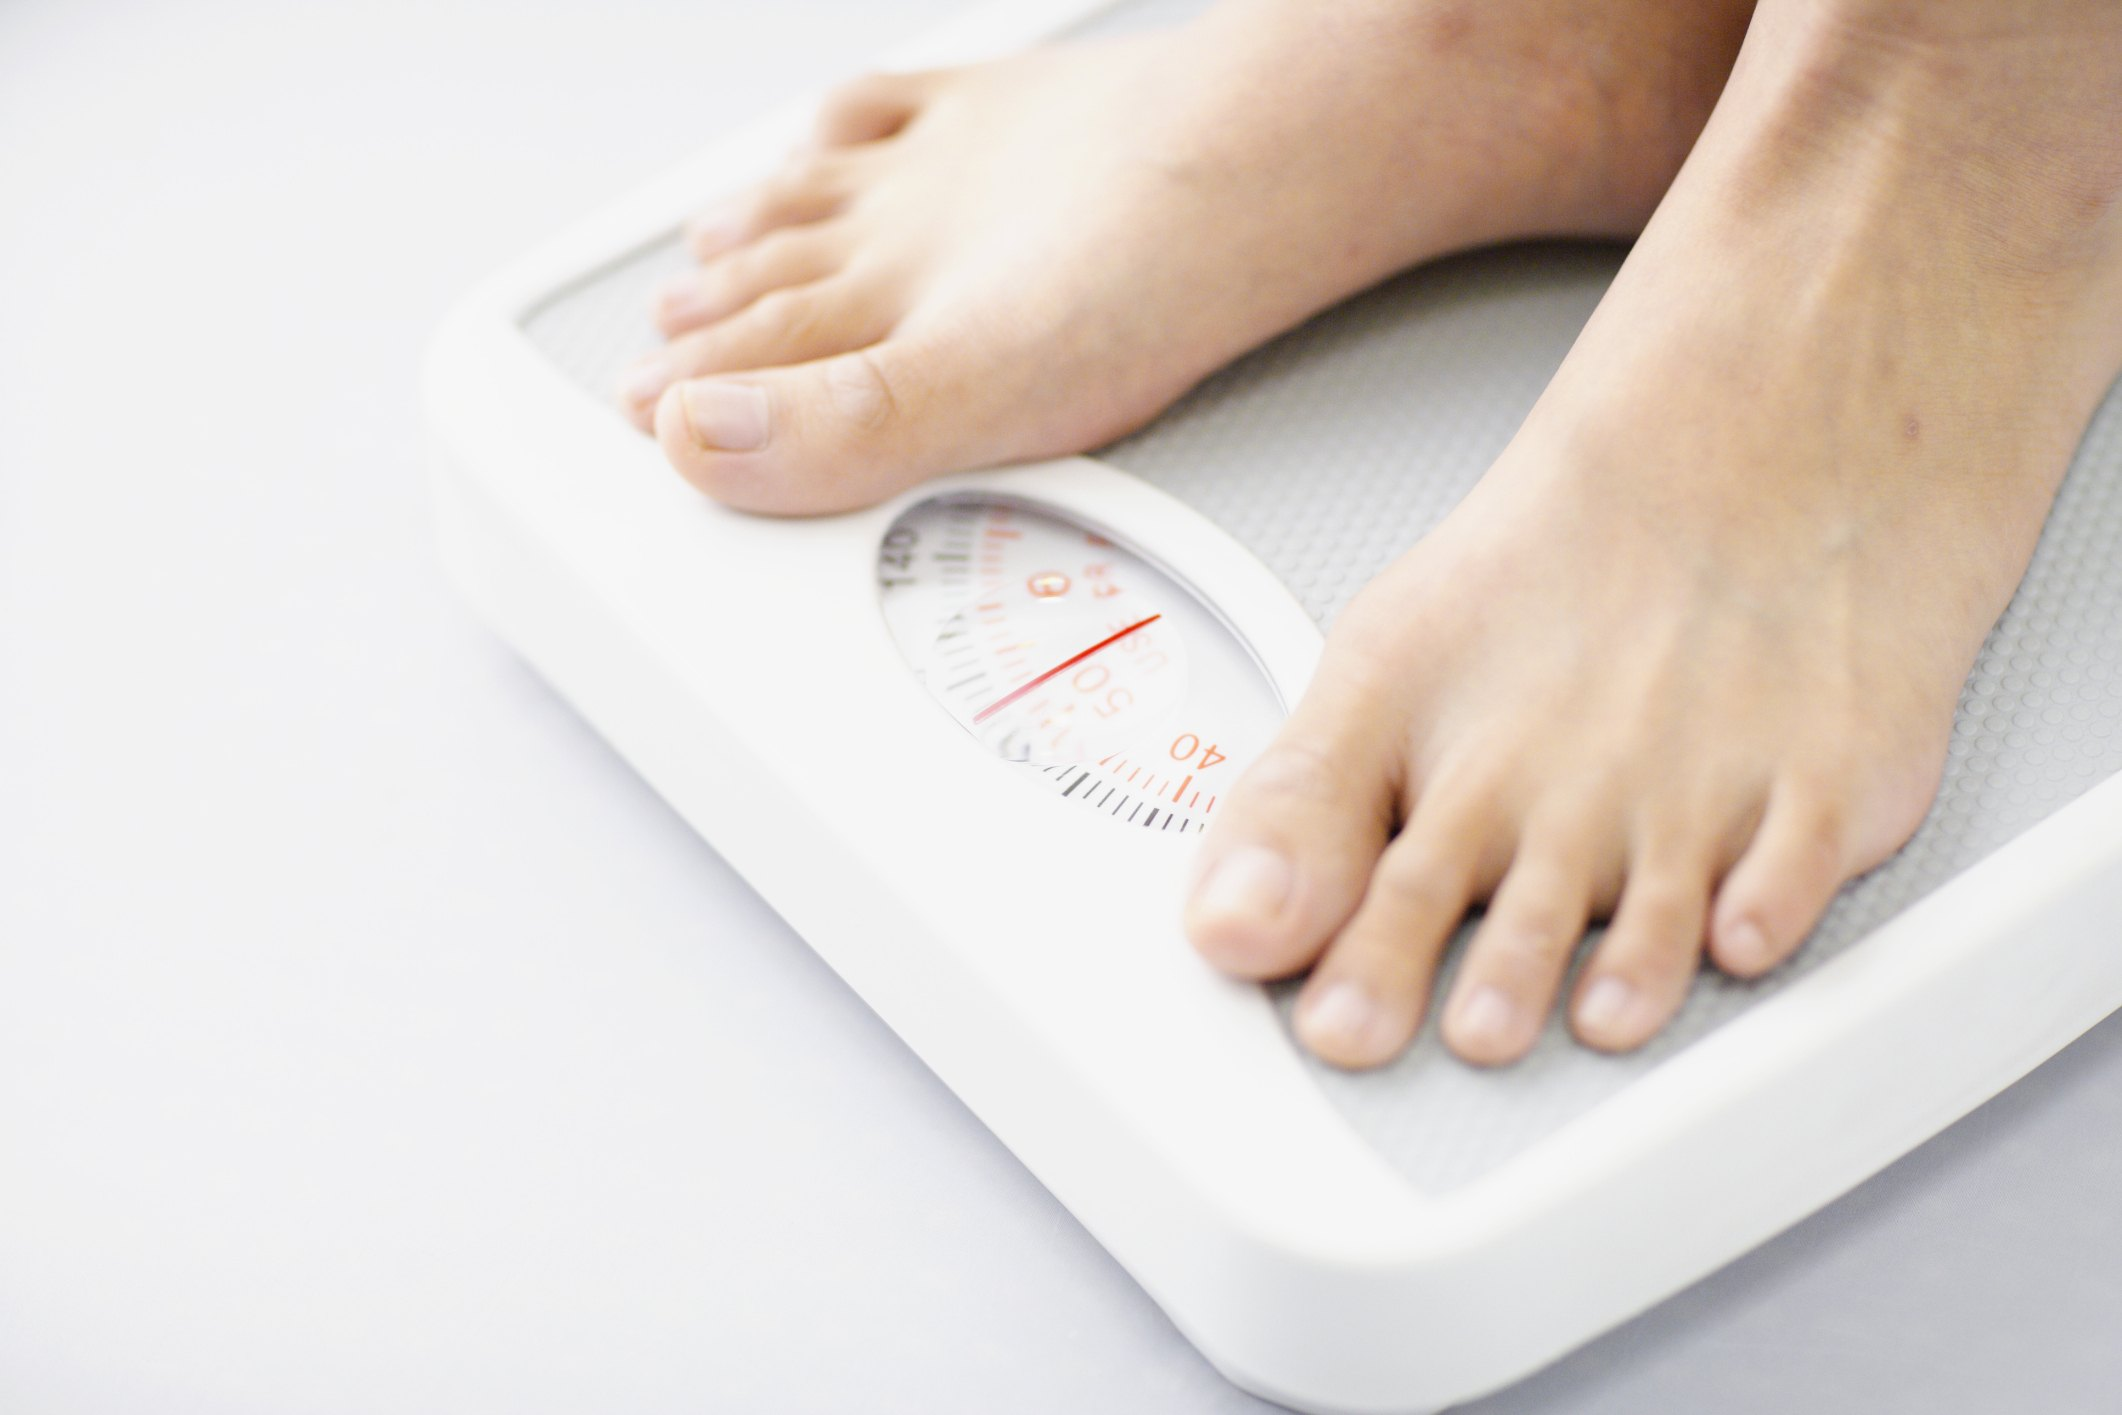 nidora weight loss system cyprus hotels